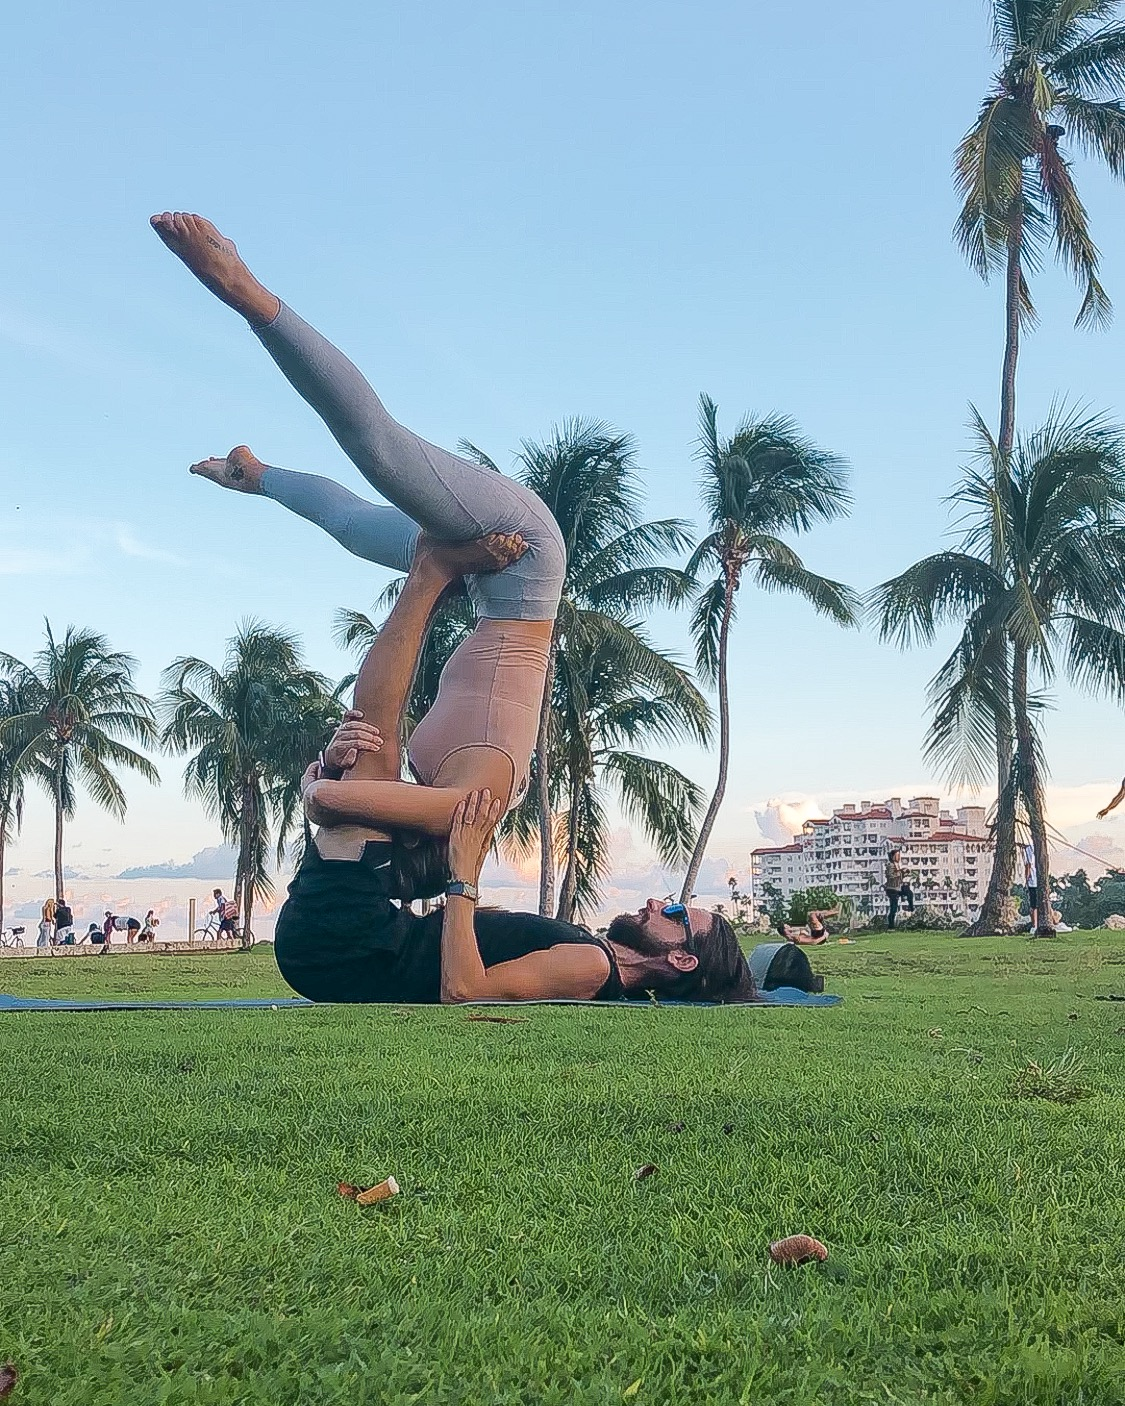 First Acro Yoga session in South Pointe Park, Miami Beach - October 2019